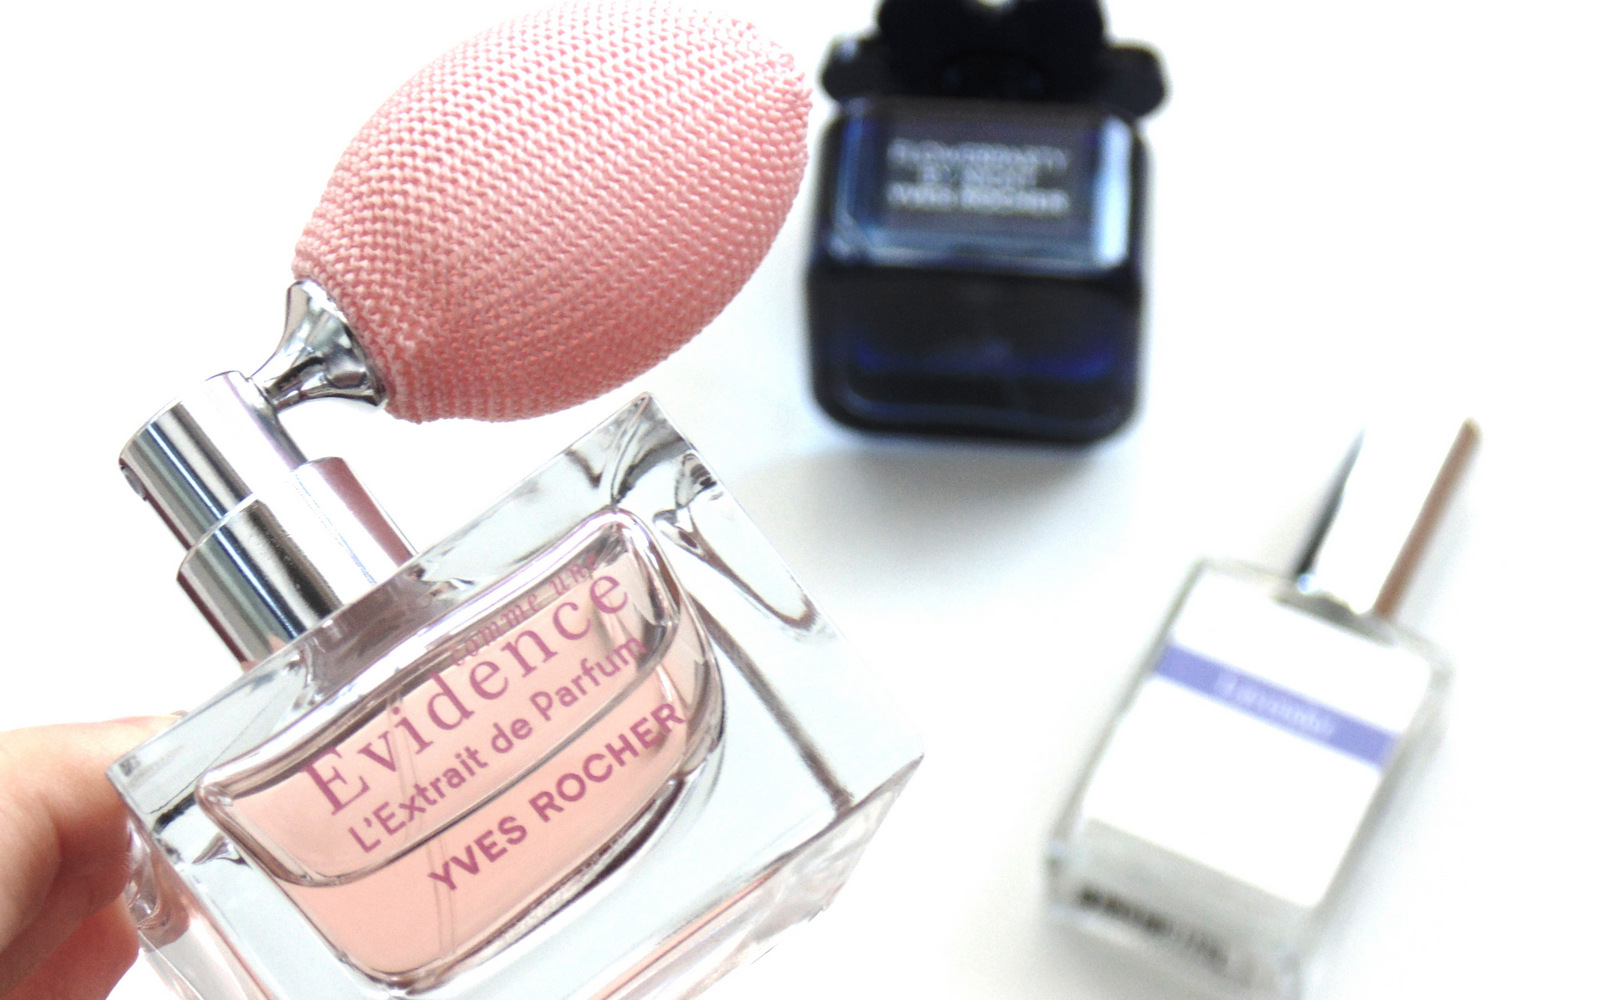 My Current Favourite Fragrances